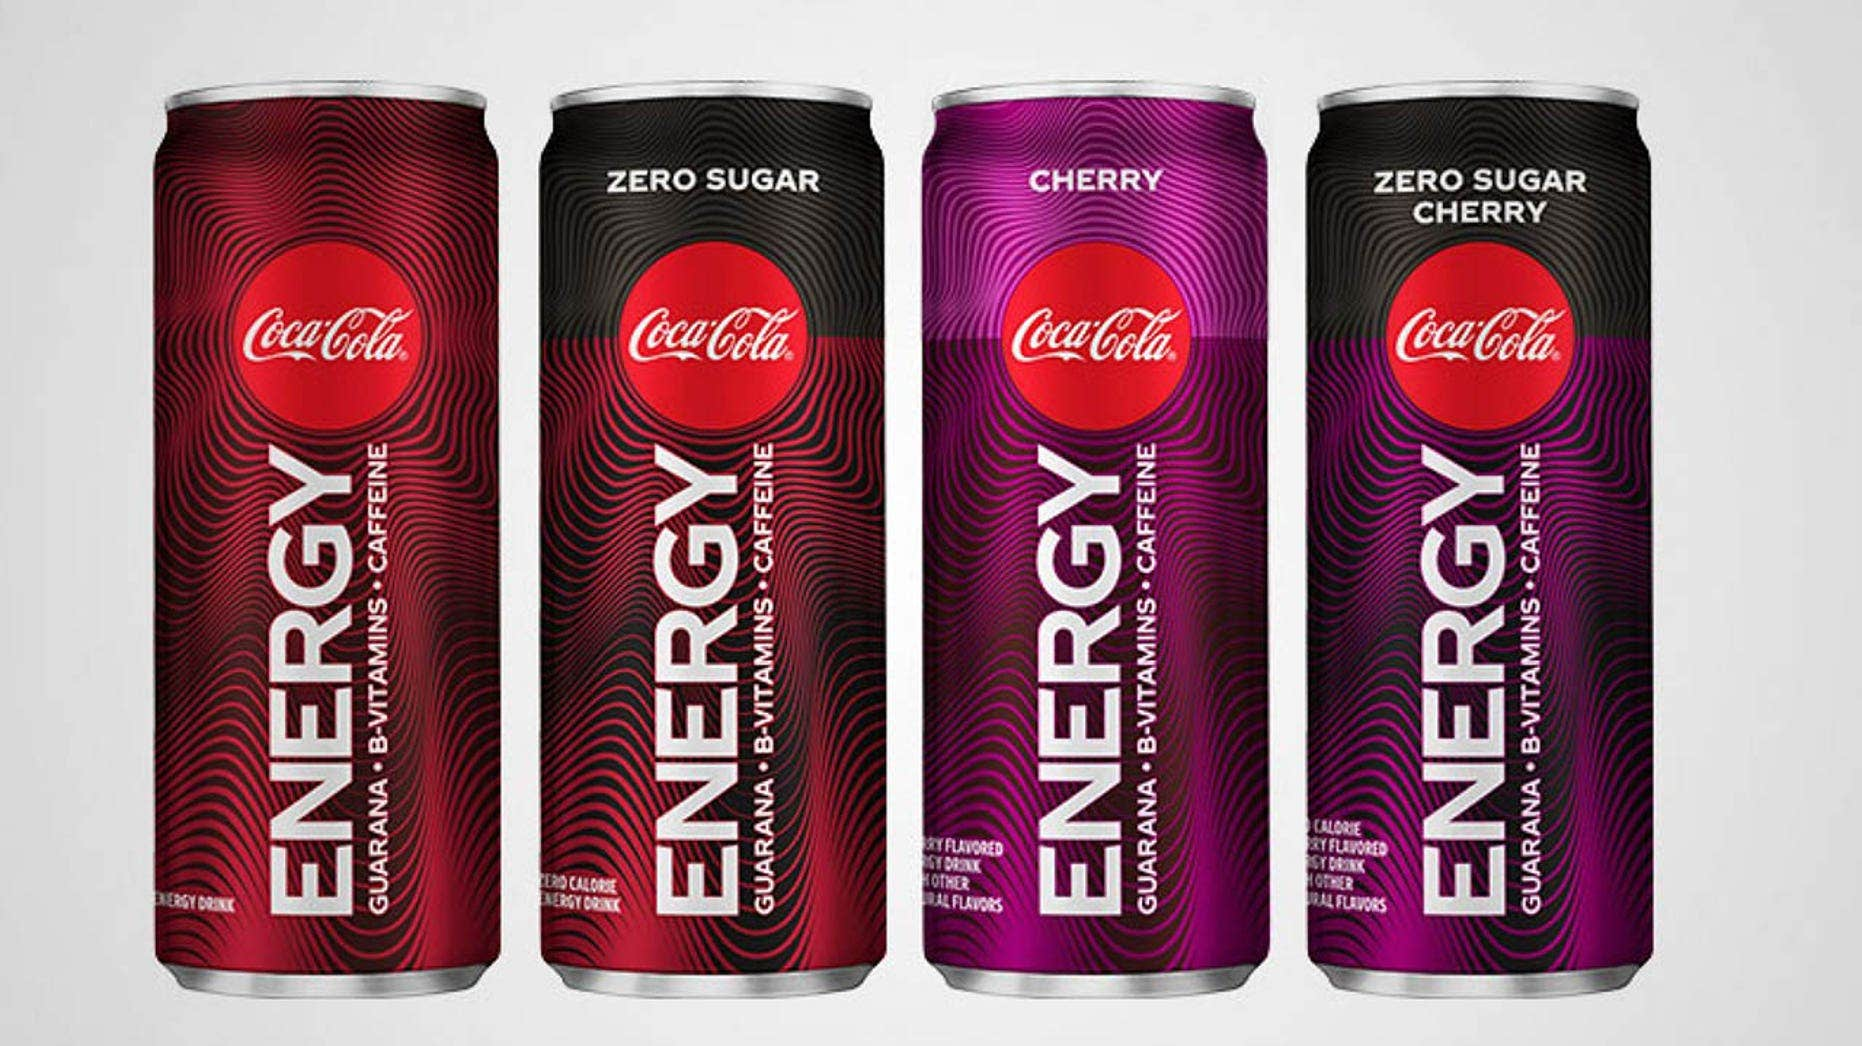 Coca-Cola tires on energy drink and will stop sales in North America